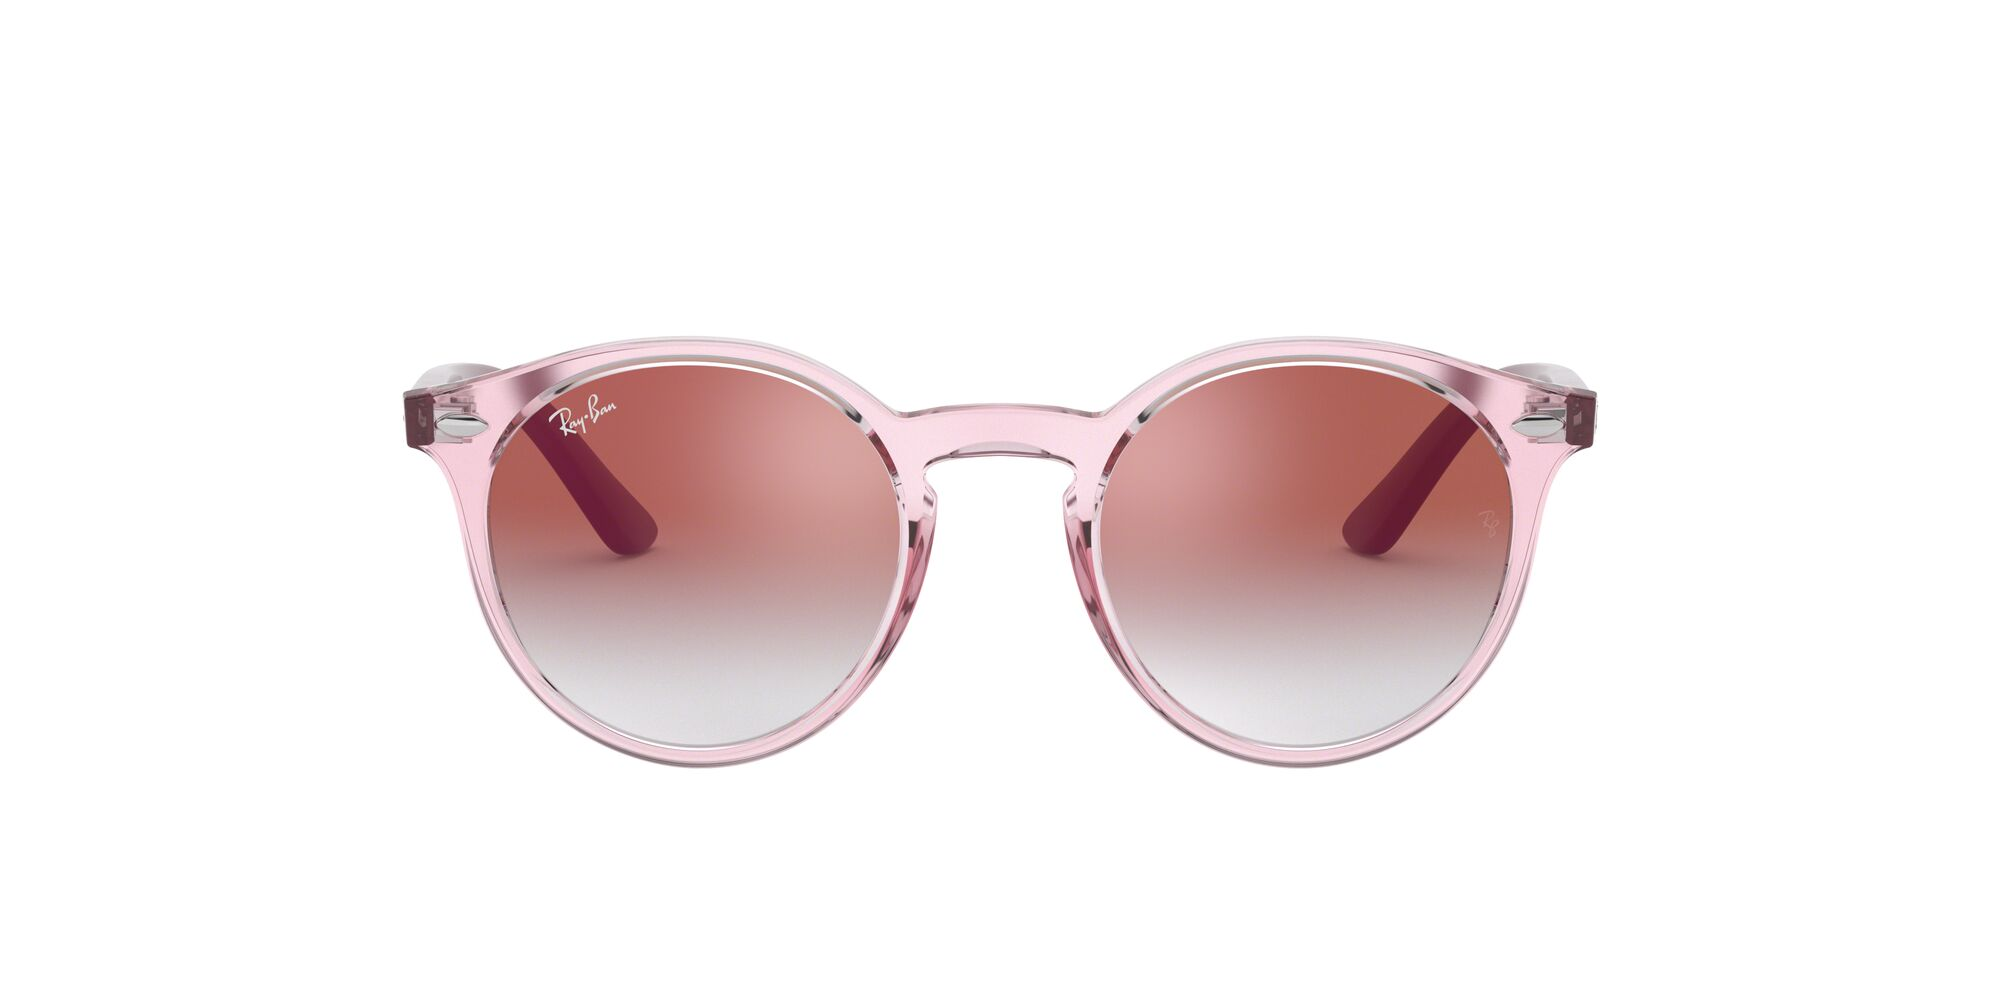 Front Ray-Ban Ray-Ban RJ9064S 7052V0 44/19 Roze/Roze